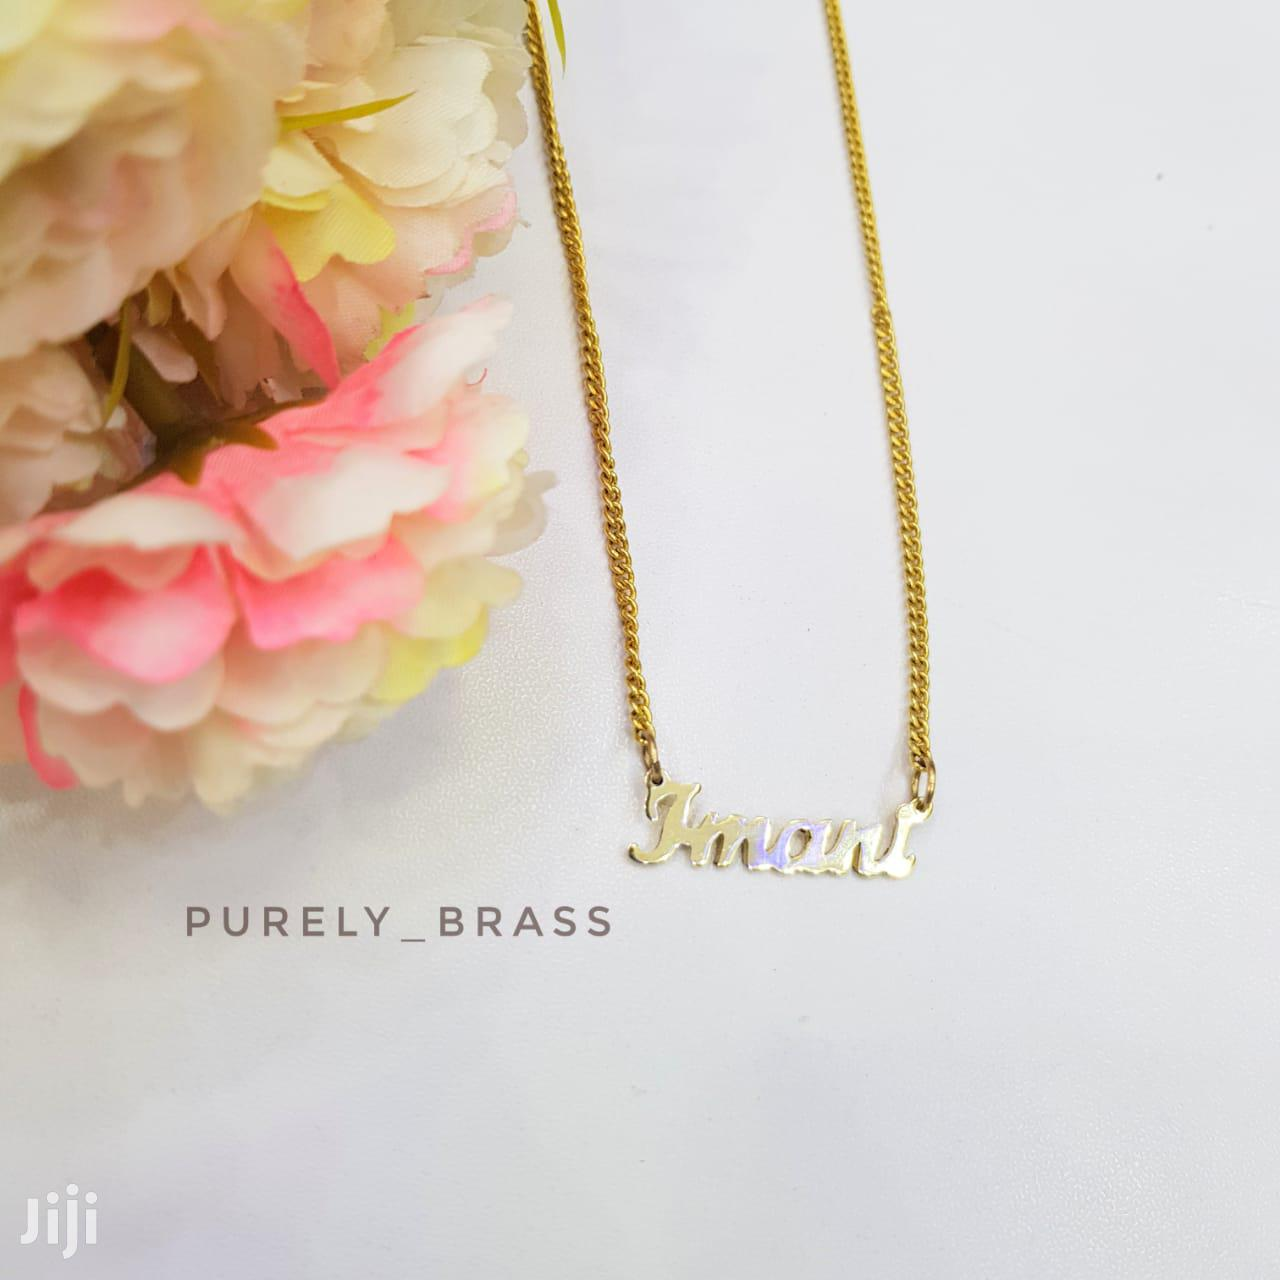 Purely Brass Necklace